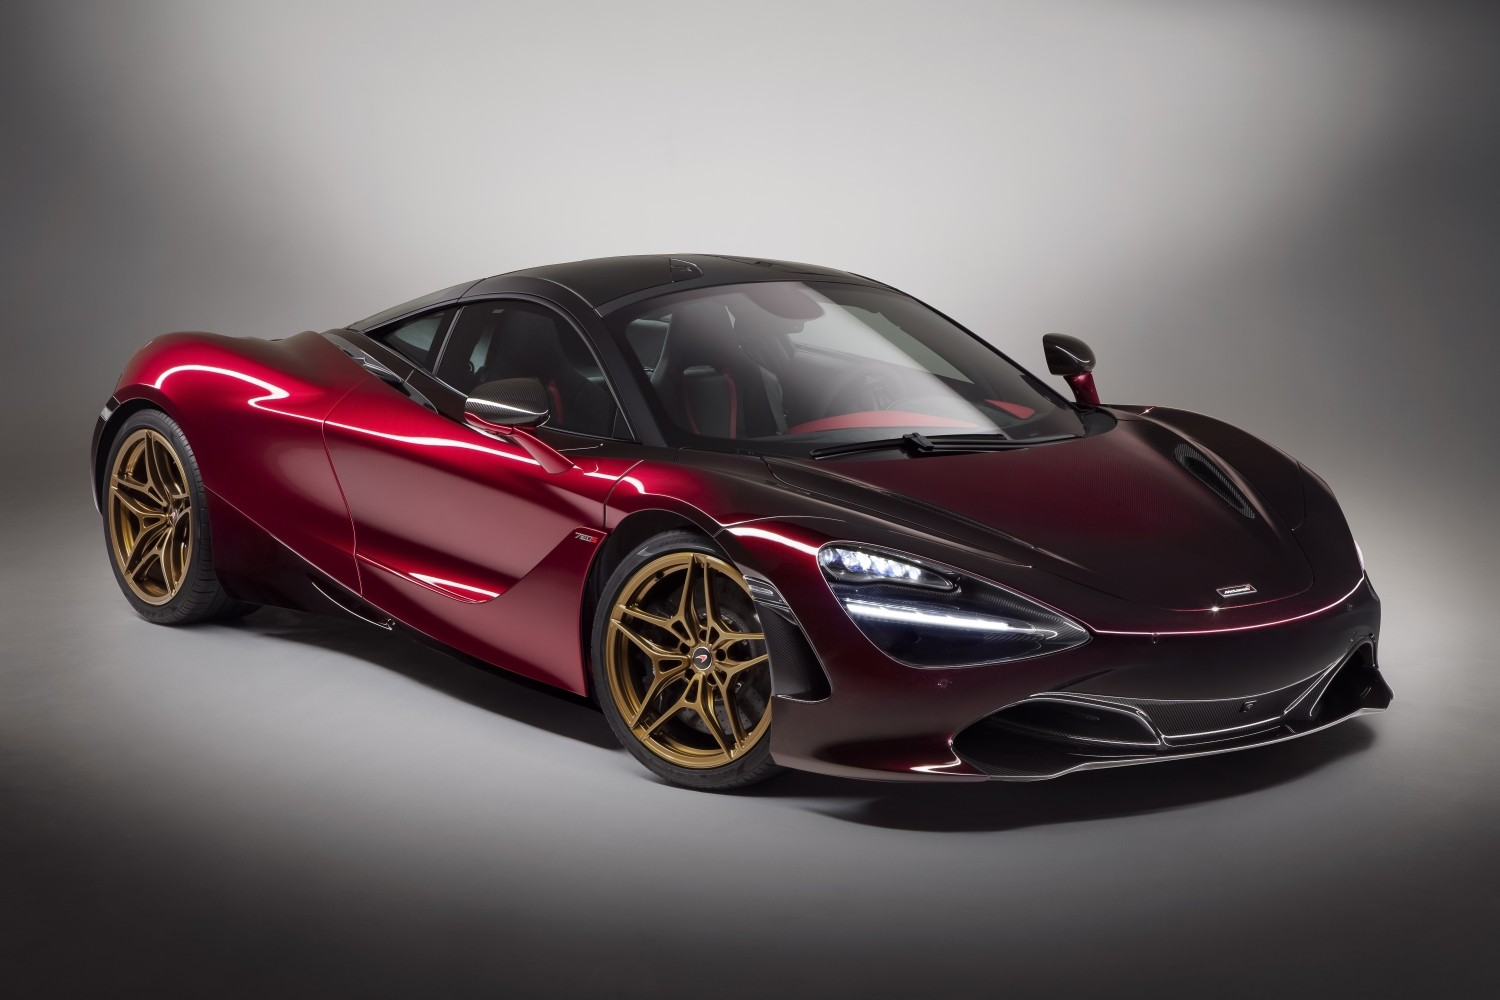 Mclaren Boss Says Chinese Supercar Ers Prefer Looks Over Performance